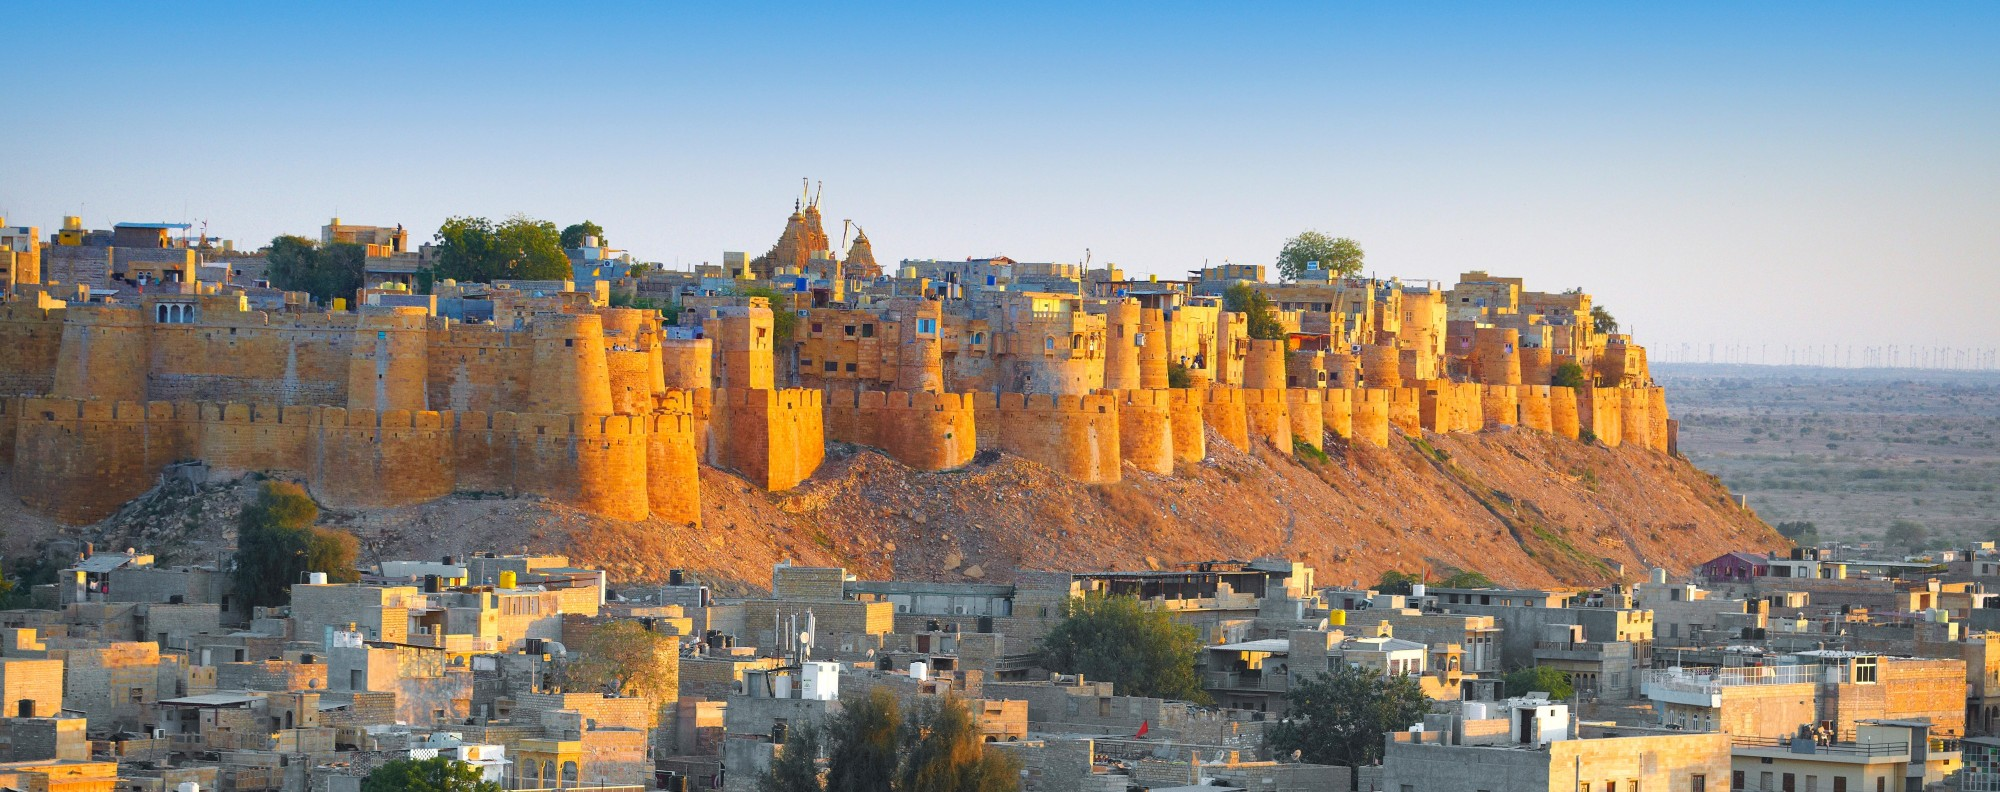 Jaisalmer Fort in Rajasthan, India. Picture: Alamy